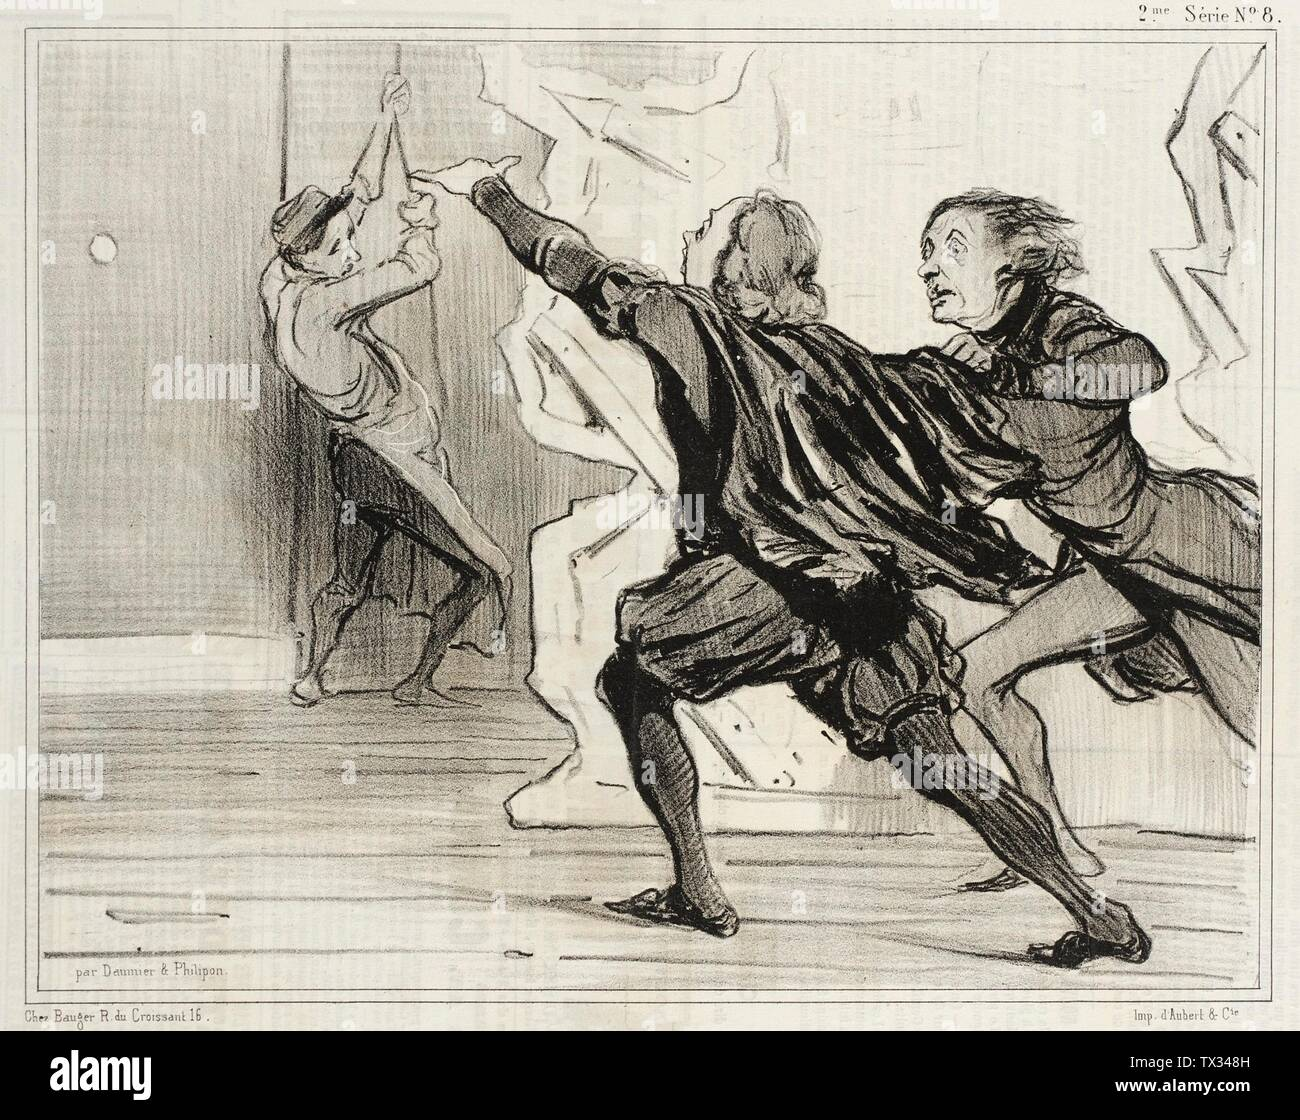 'Farce dramatique...; English:  France, 1841 Series: Robert Macaire Periodical: Le Charivari, 18 April 1841 Prints; lithographs Lithograph Sheet: 7 11/16 x 9 15/16 in. (19.53 x 25.24 cm) Gift of Mrs. Florence Victor from The David and Florence Victor Collection (M.91.82.137) Prints and Drawings; 1841date QS:P571,+1841-00-00T00:00:00Z/9; ' - Stock Image